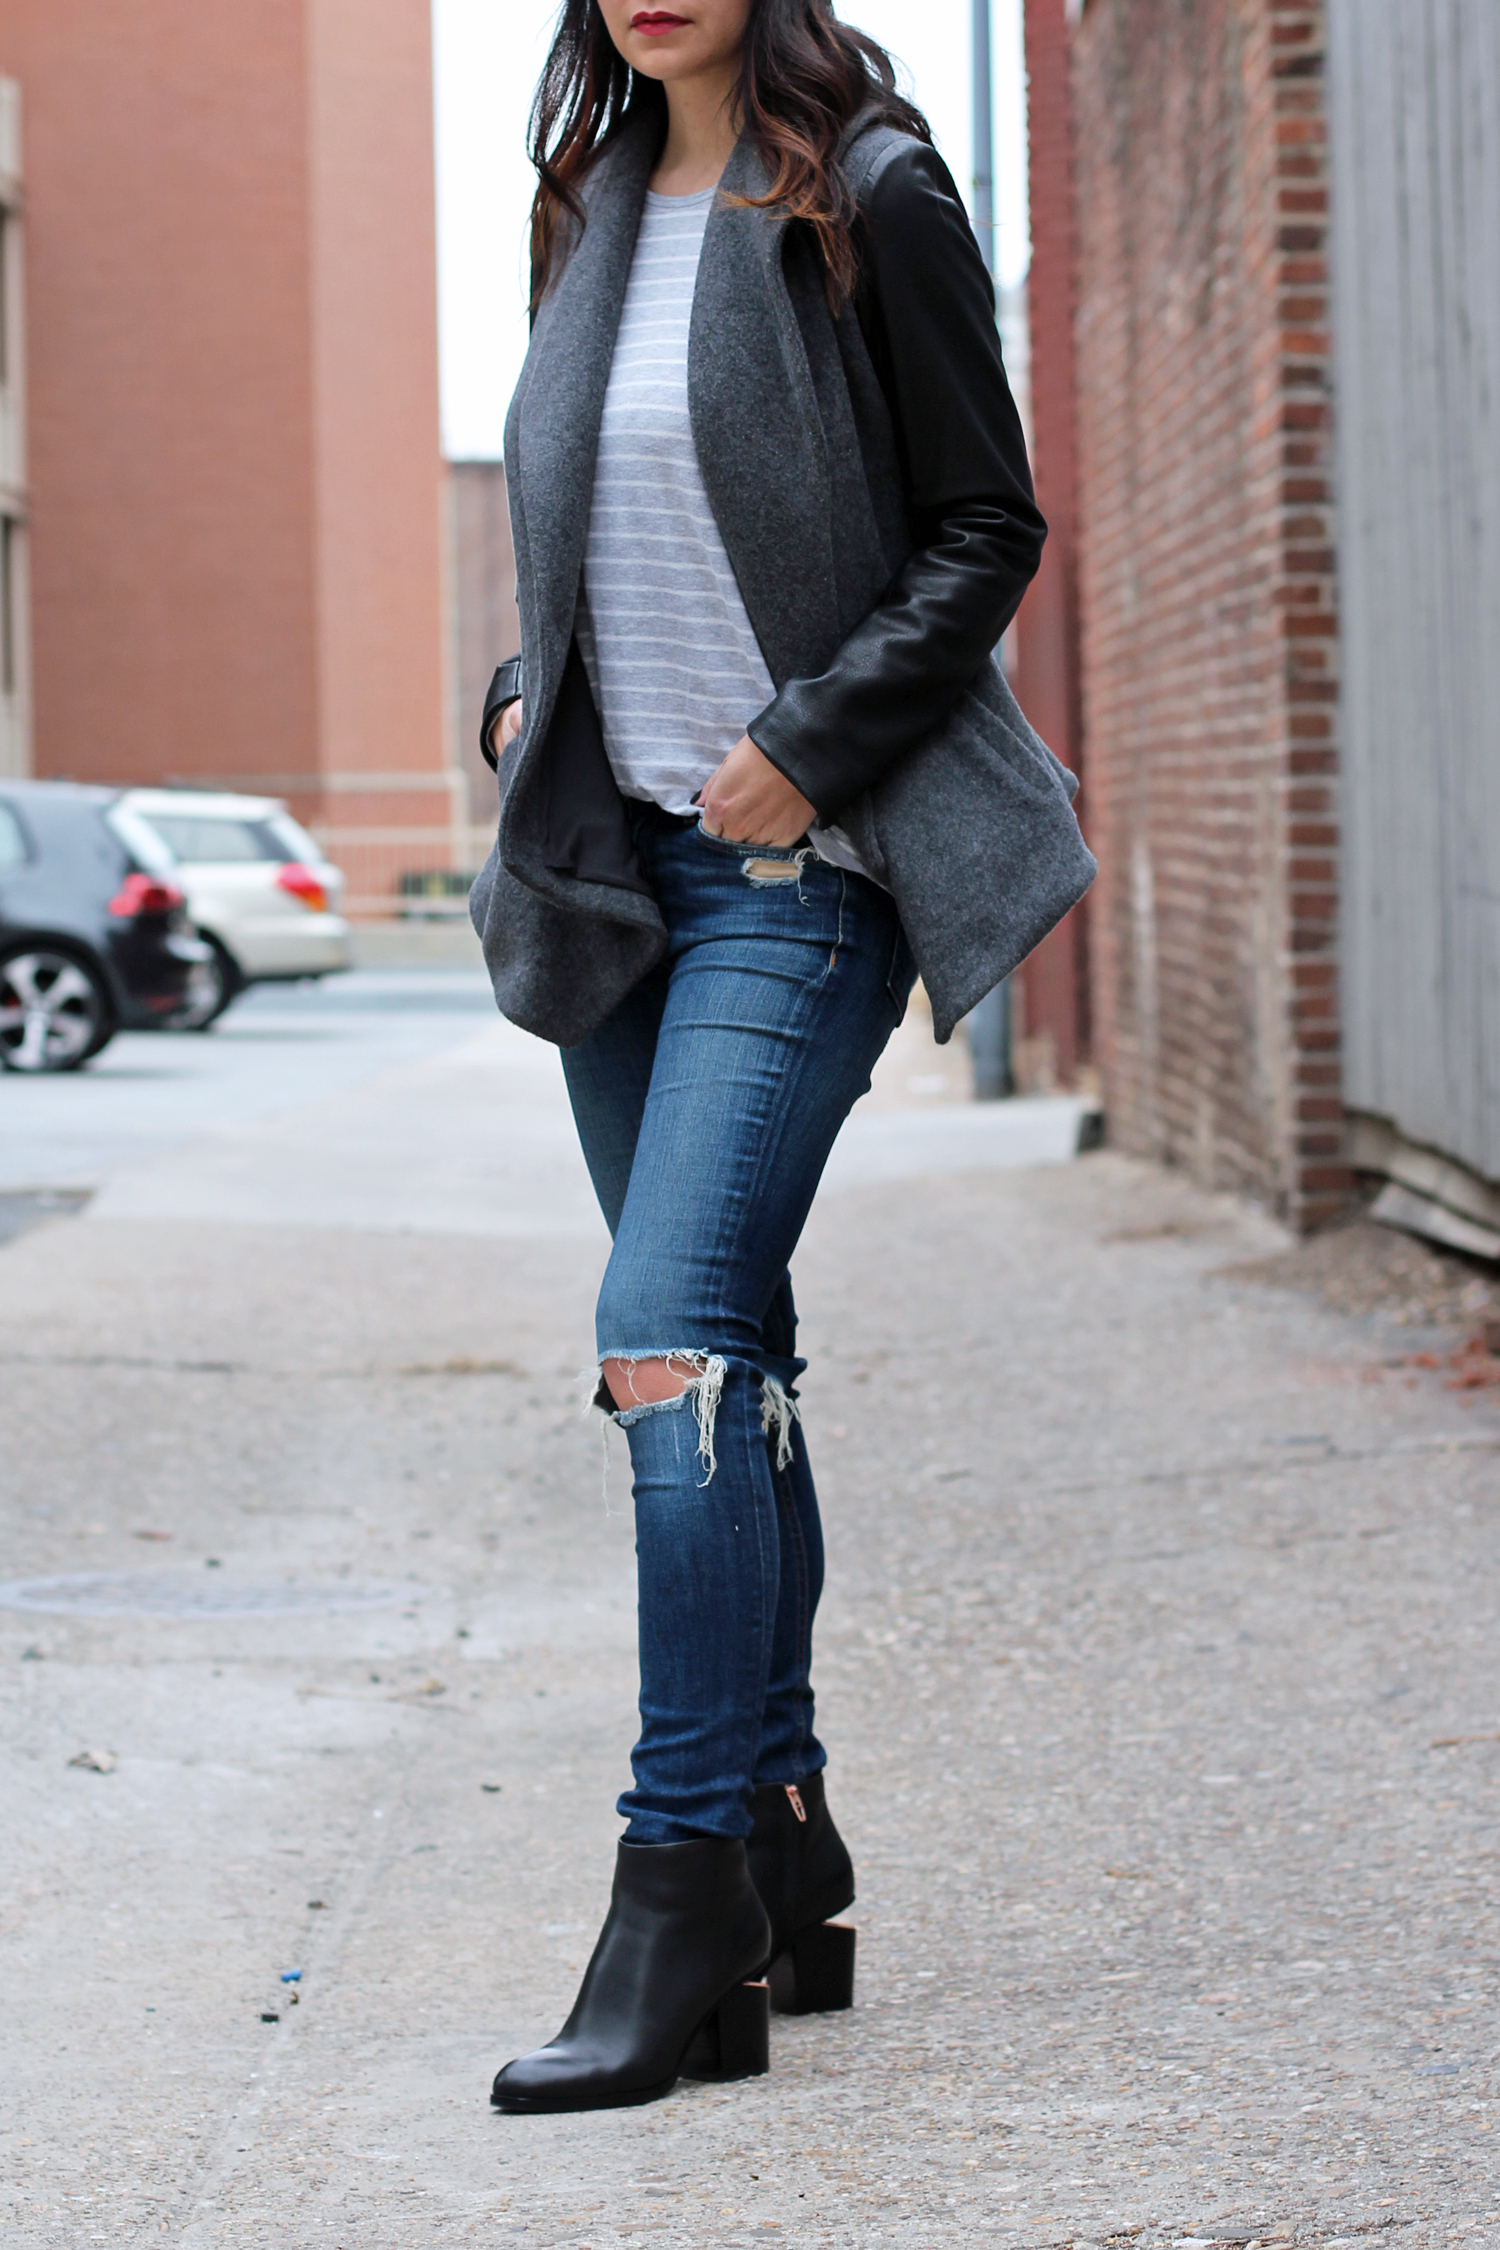 Black Ankle Boot Outfit